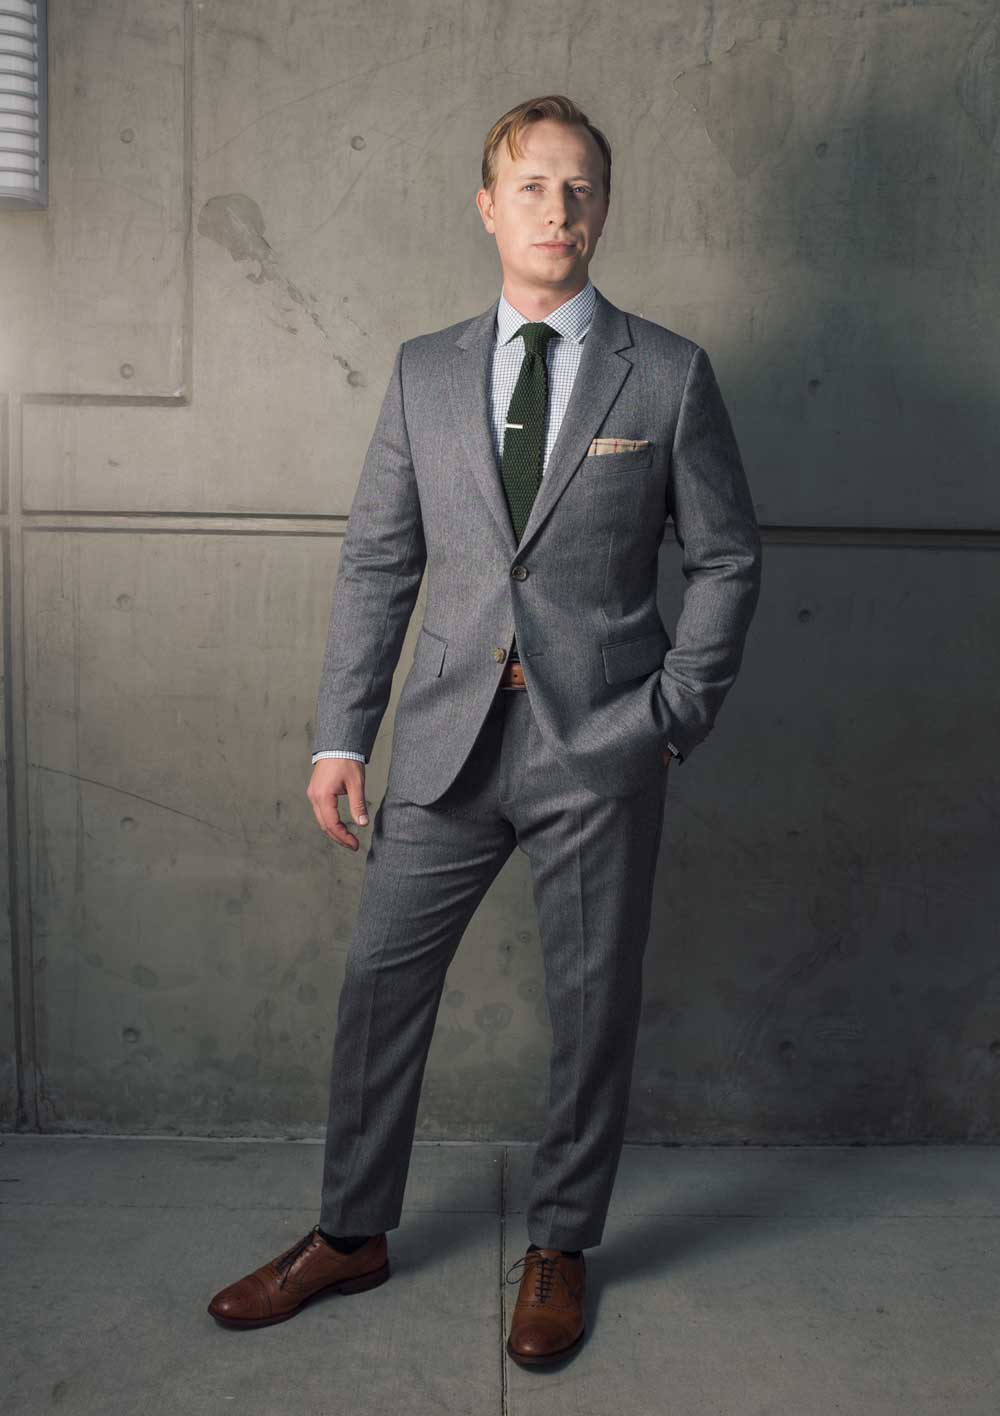 What to wear to a wedding - Indochino premium herringbone suit